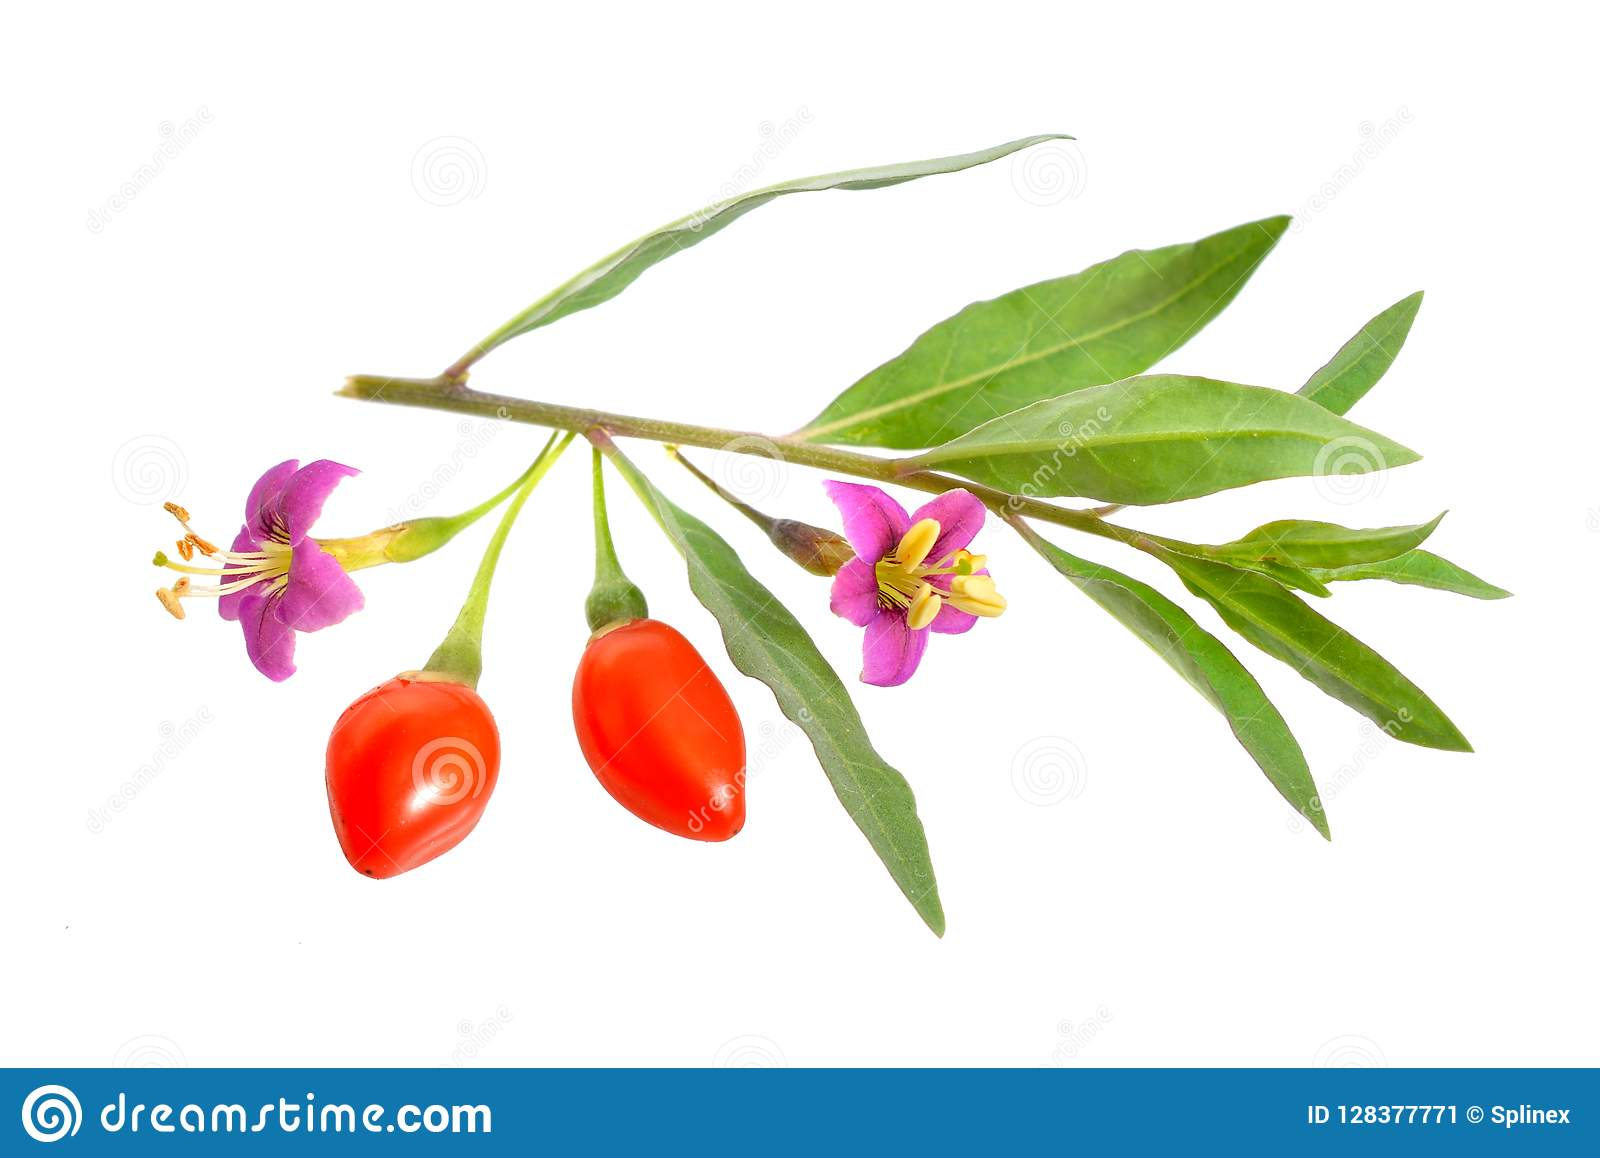 Goji Berries Or Lycium Barbarum With Flowers Isolated On White